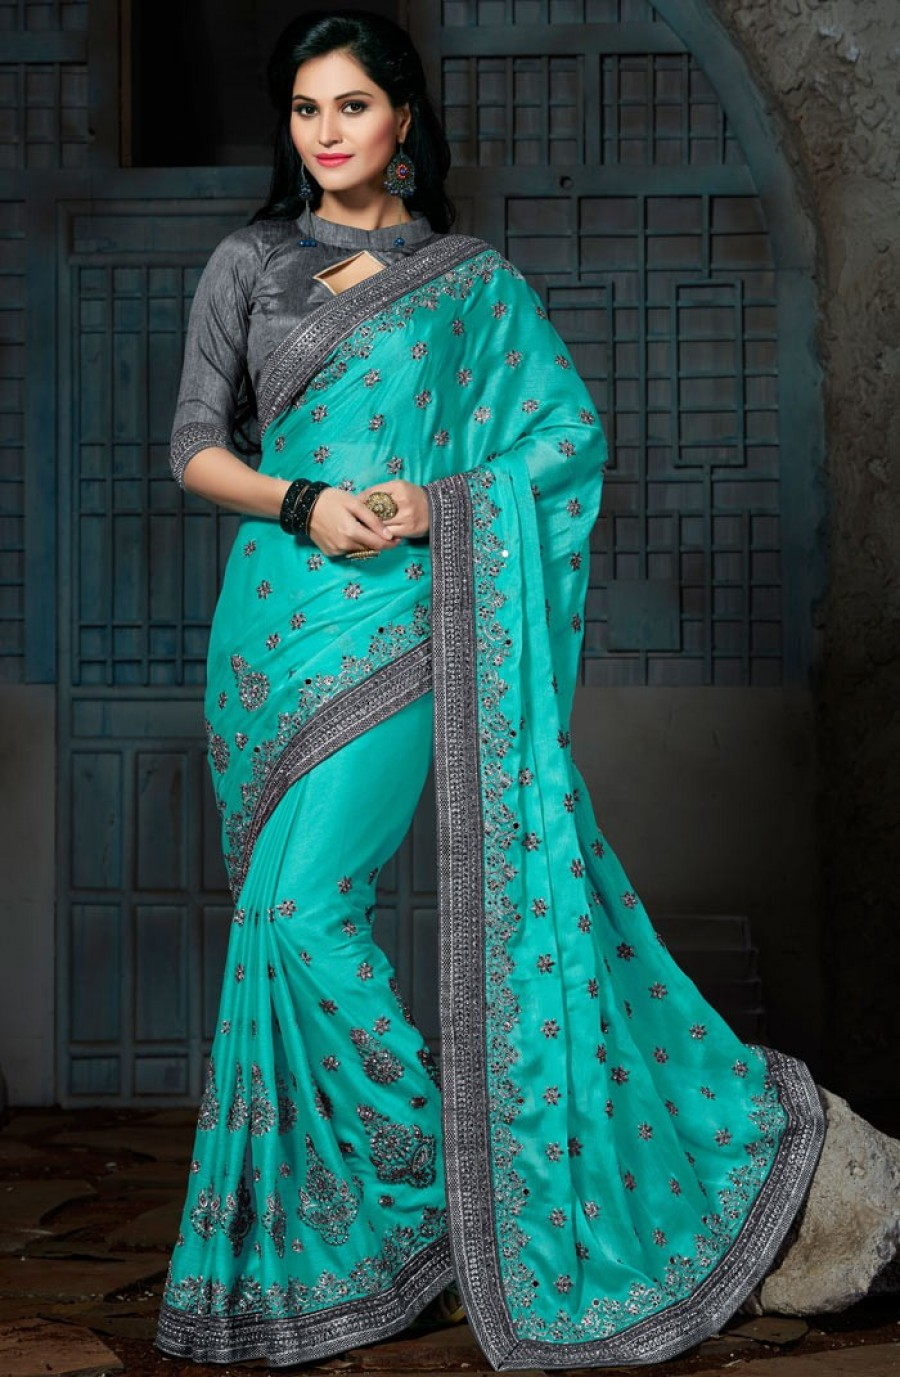 8771781a48 Pick Online | Turquoise Crepe Chiffon Saree With Blouse | 548556